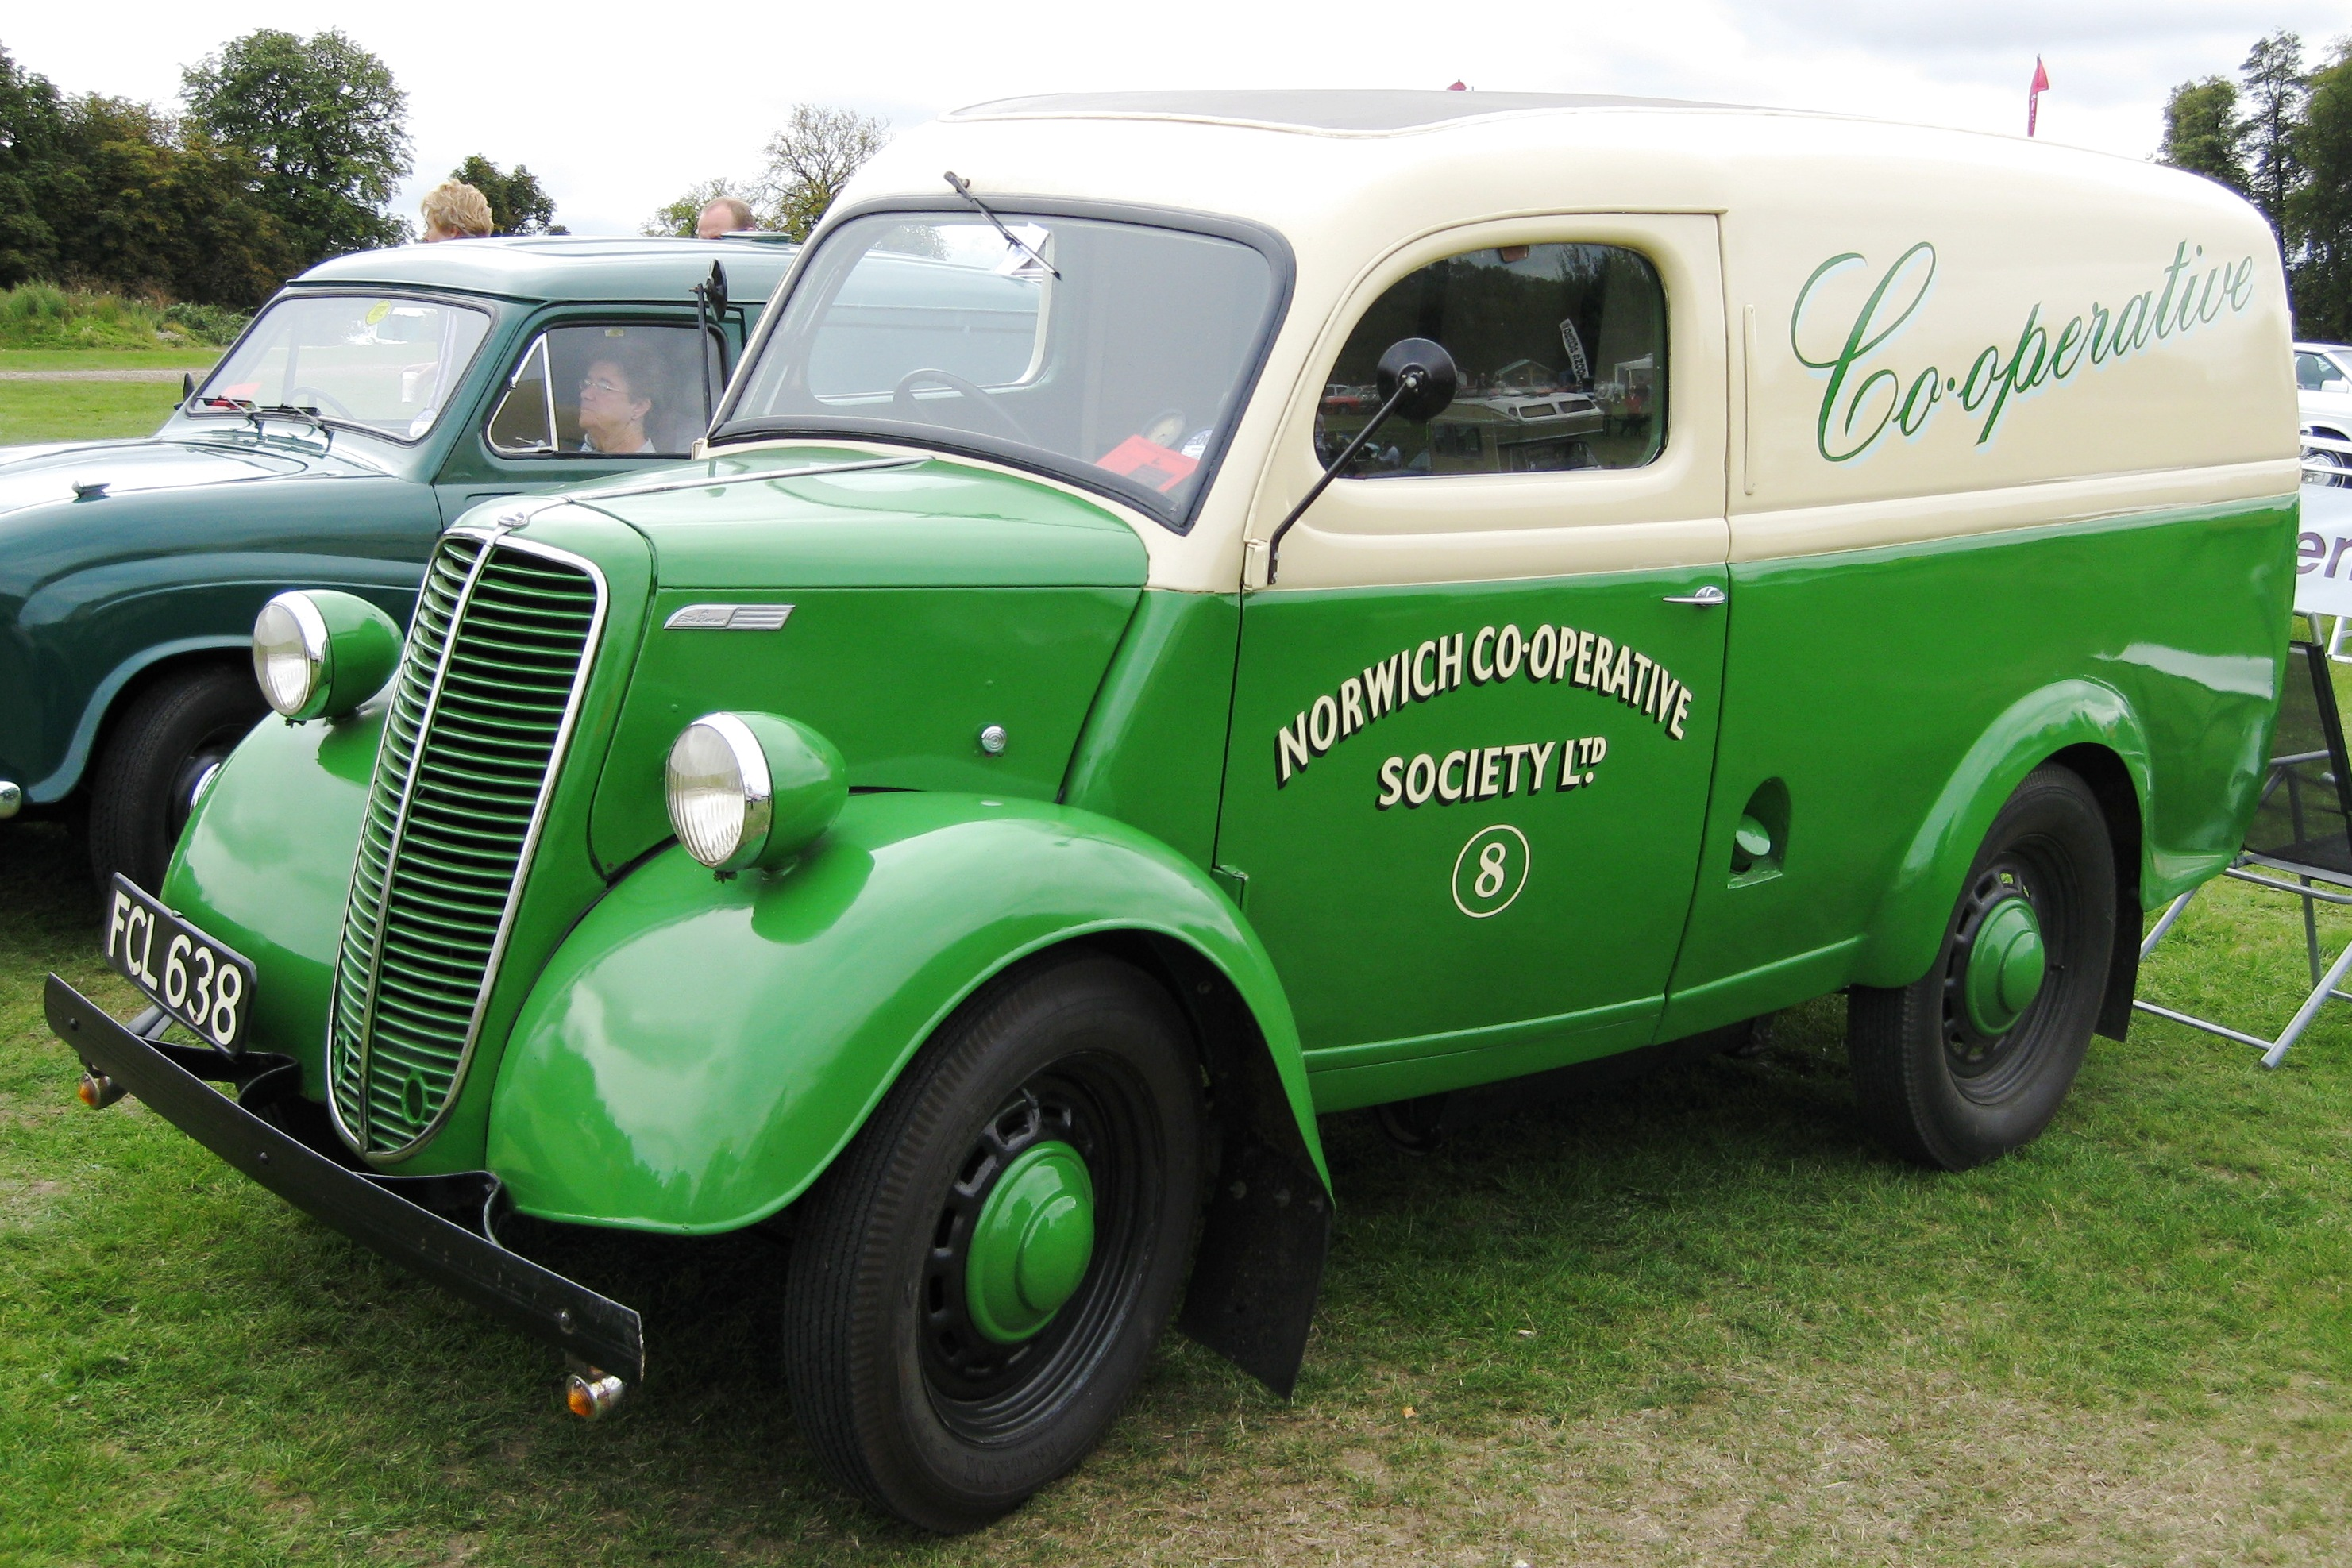 ford anglia panel van for sale with File Ford Thames Van In Norwich Co Op Livery on File 1942 ford anglia a54a coupe utility  8705965336 besides Anglia Ford Sale further Ford Anglia together with 280960 1948 Ford Thames Panel Truck Gasser Project 1932 1940 Nostalgia Drags Anglia in addition 419594 Pro Street Rat Rod 47 Ford Pickup Rat Racer Thingy Ebay.